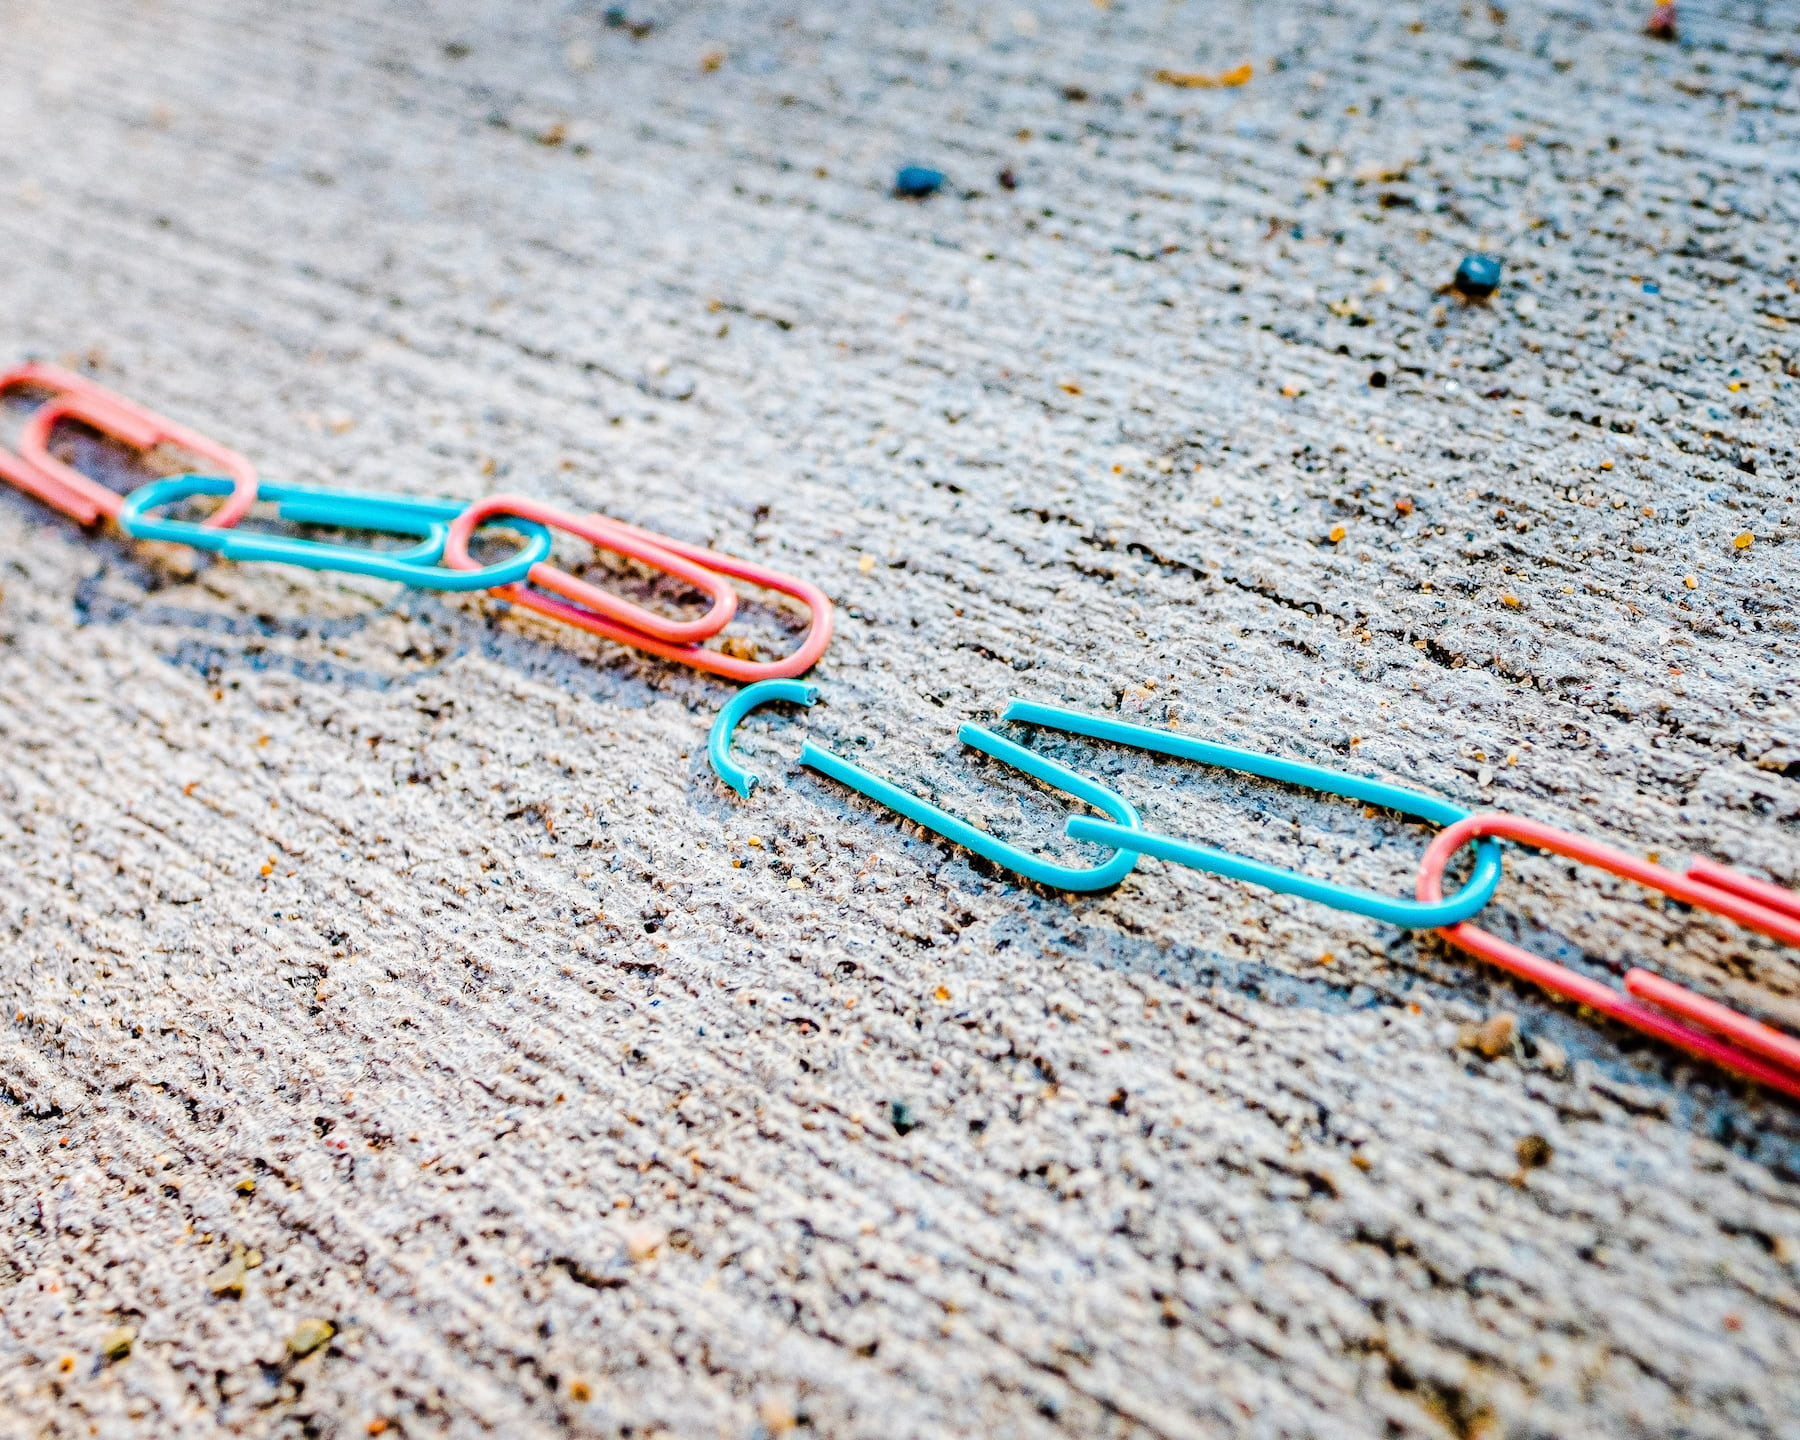 Broken chain of paper clips on stone